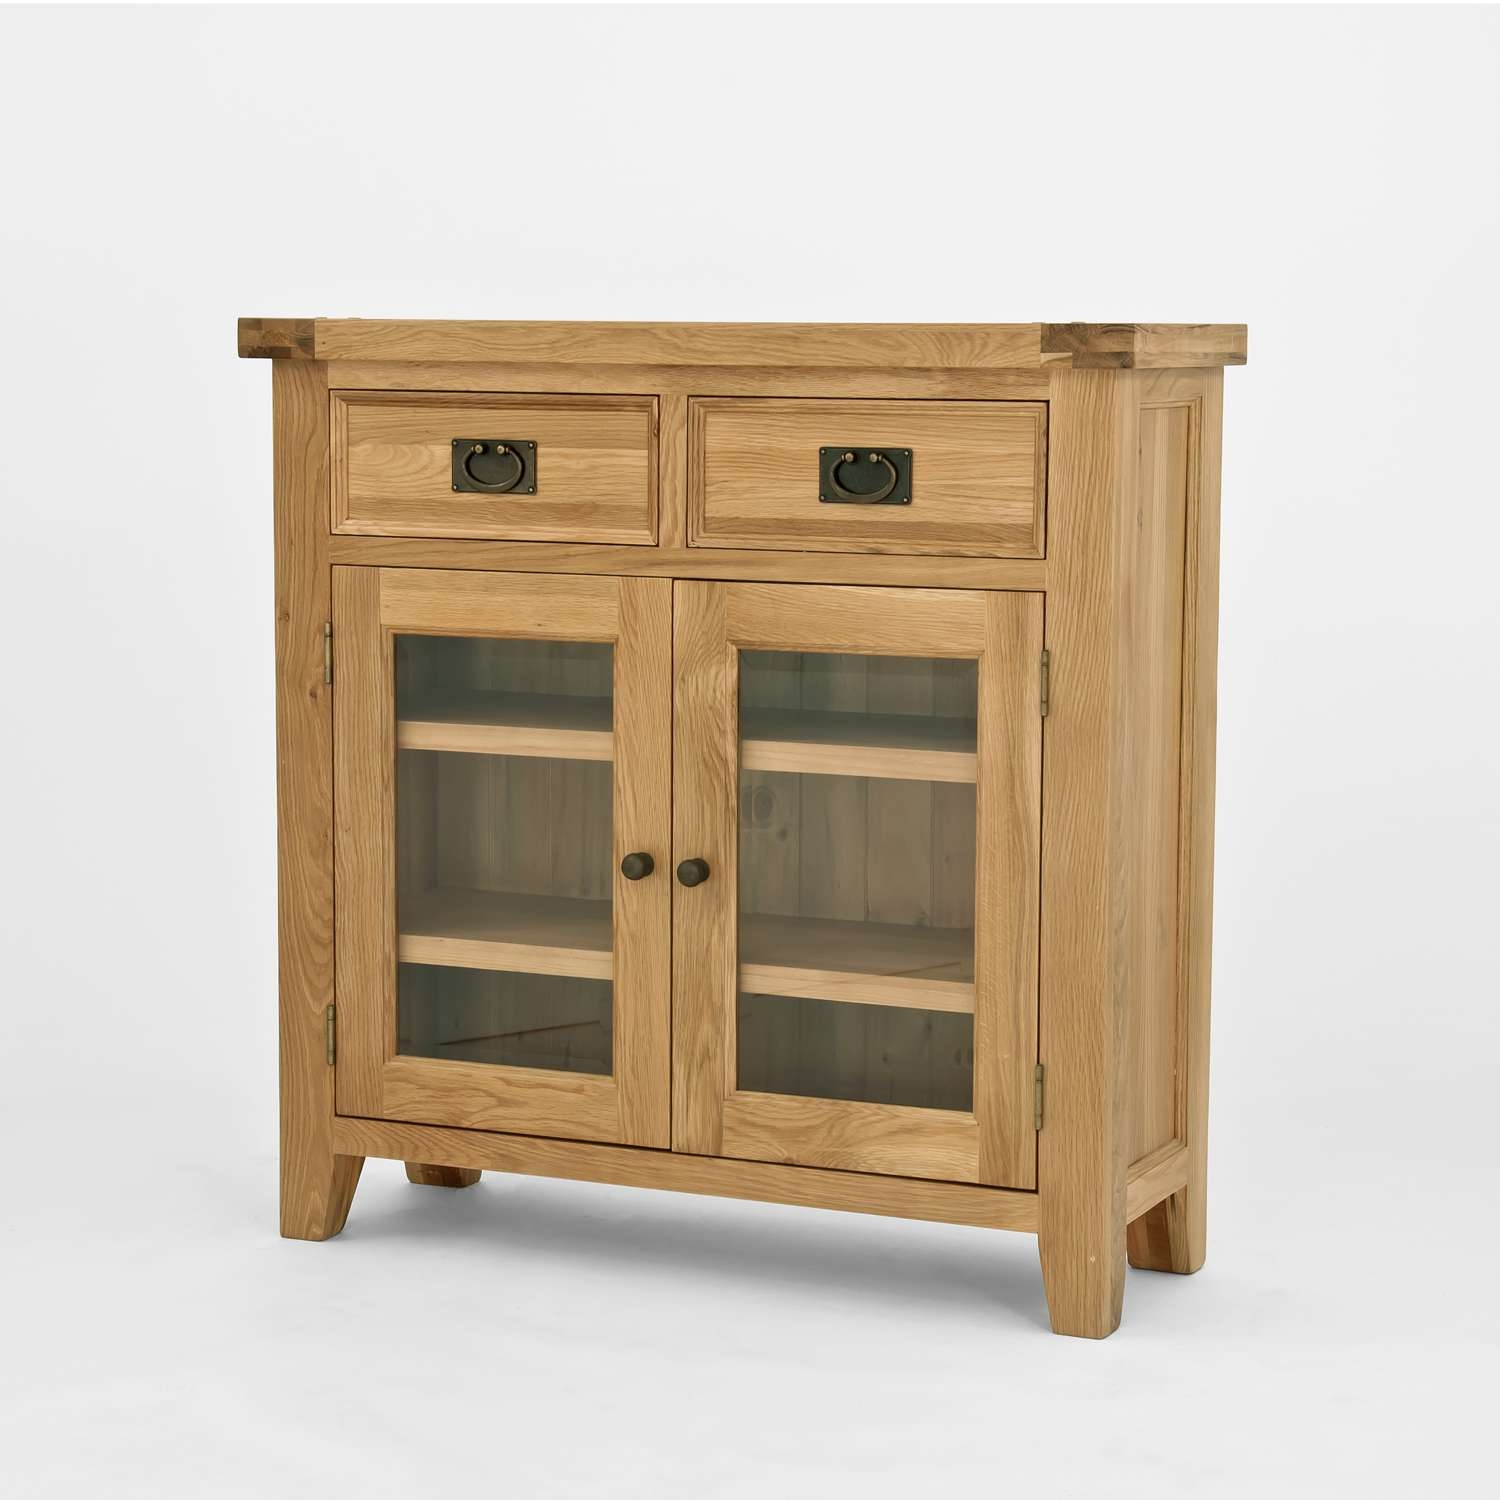 Chiltern Oak Small Sideboard/bookcase With Glass Doors Intended For Small Sideboards (View 4 of 20)